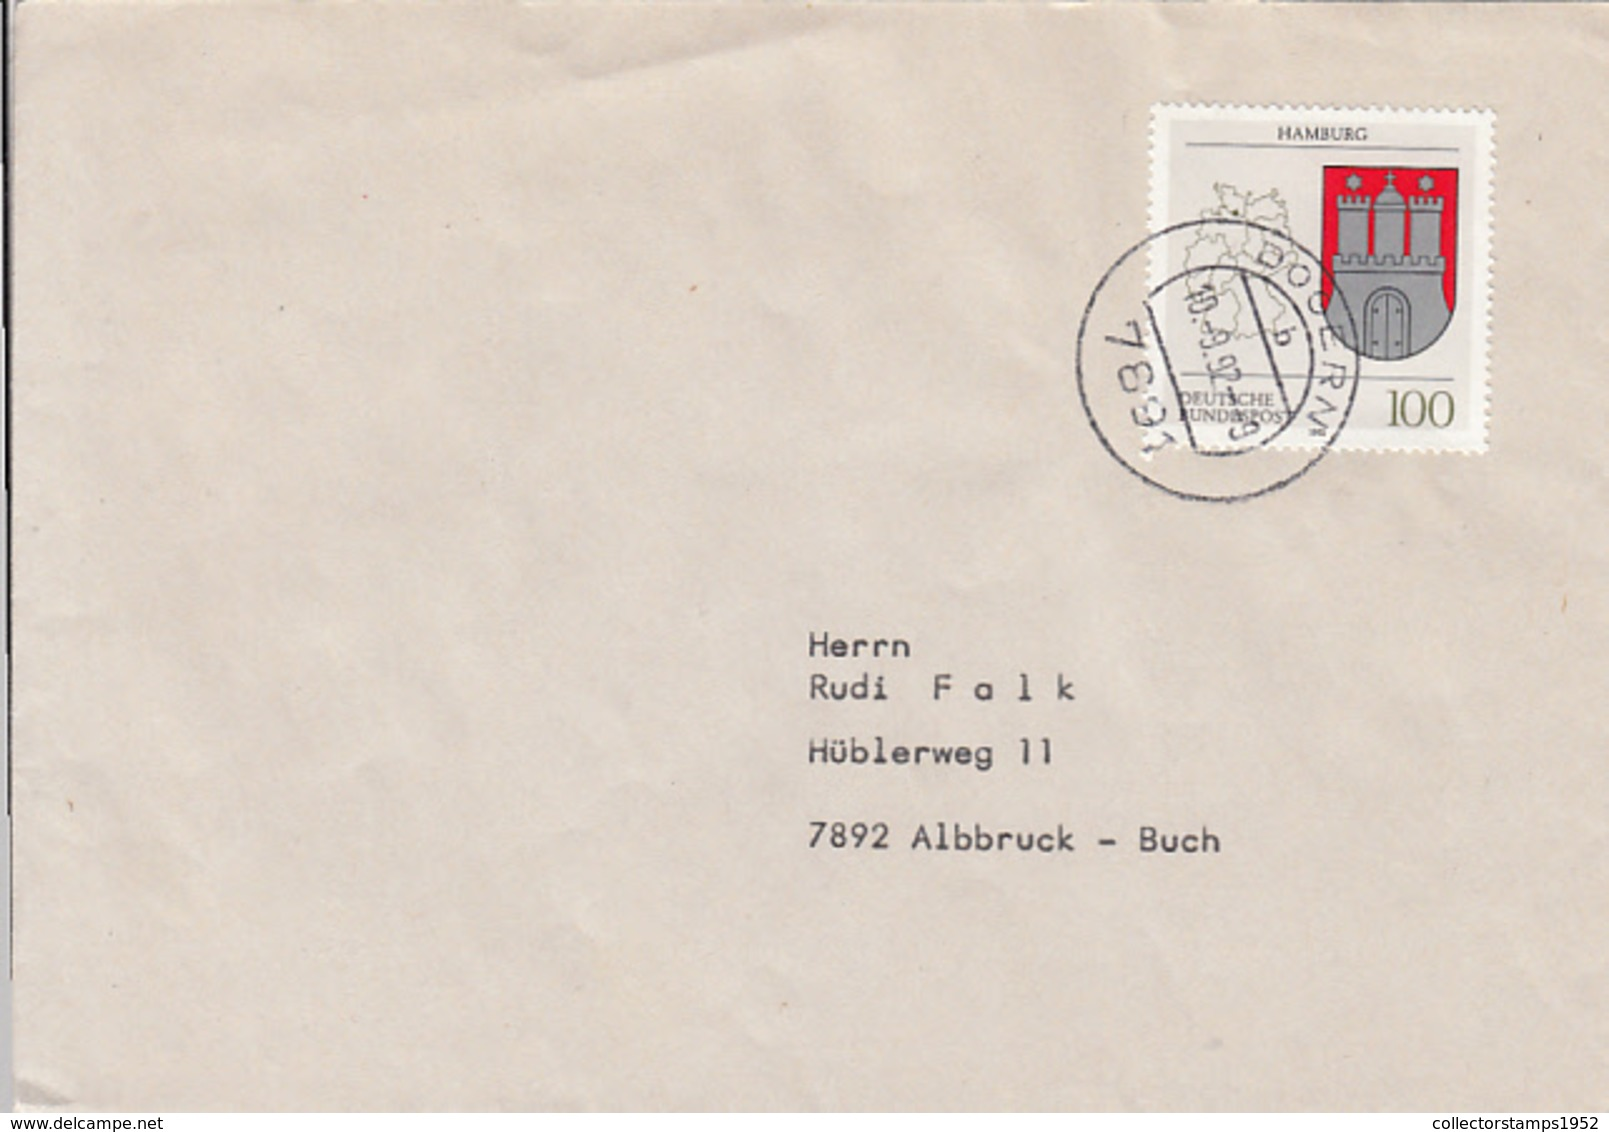 84036- HAMBURG COAT OF ARMS STAMPS ON COVER, 1992, GERMANY - Storia Postale